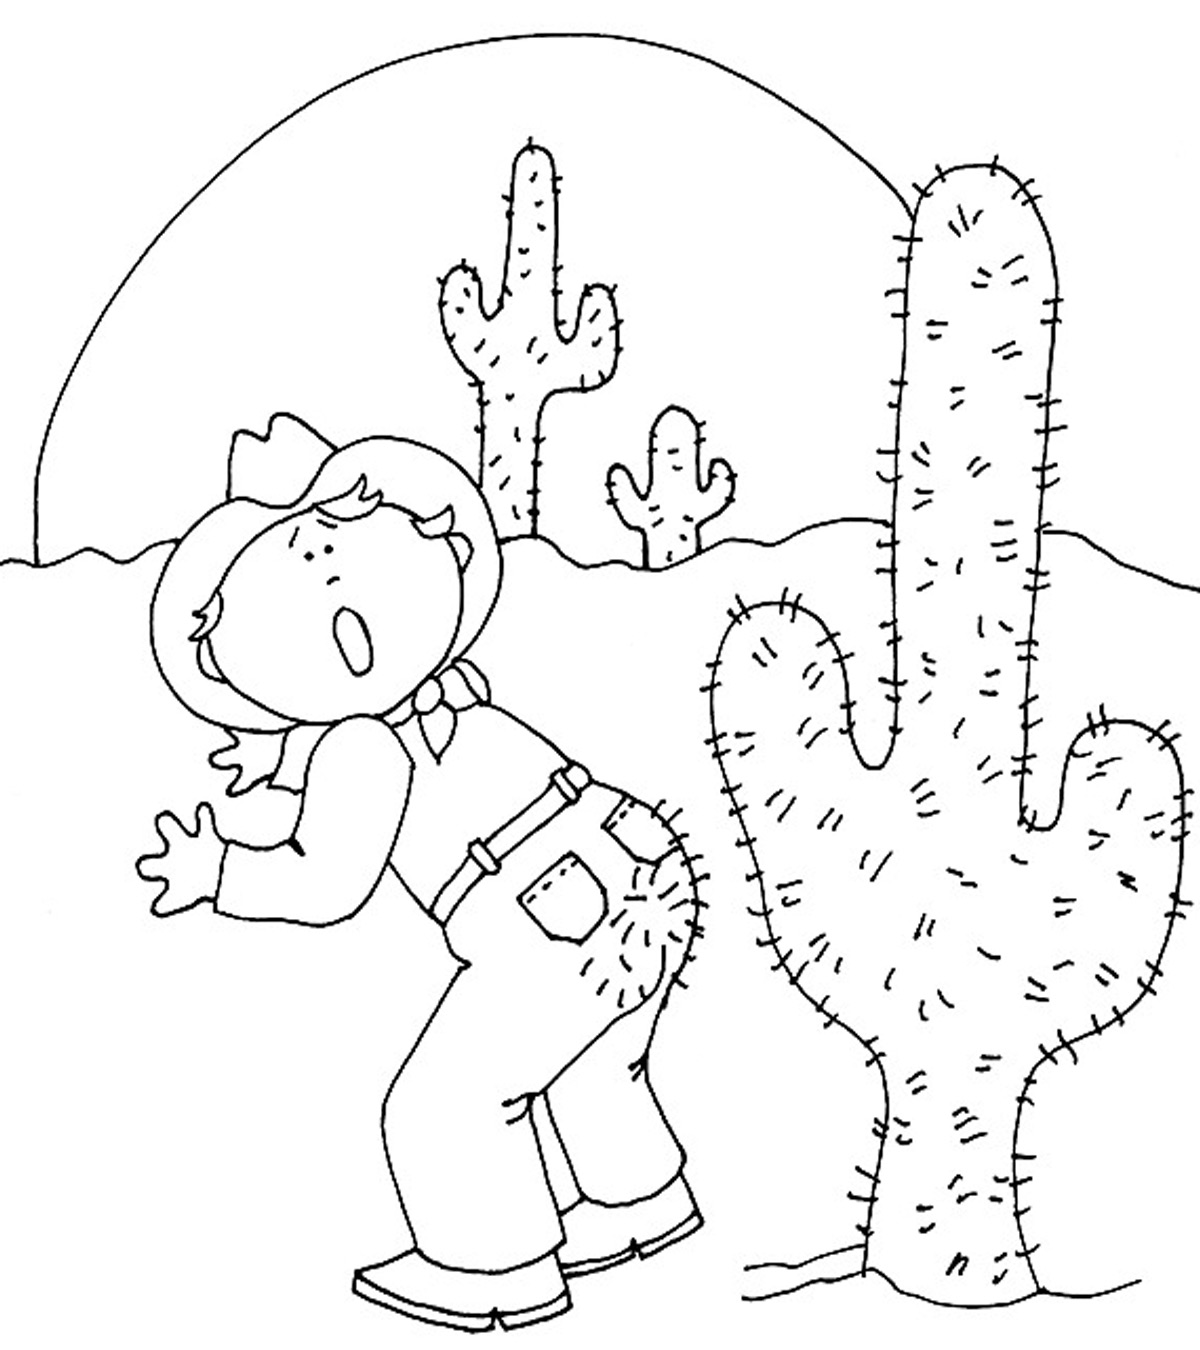 Top 10 Cactus Coloring Pages For Toddlers